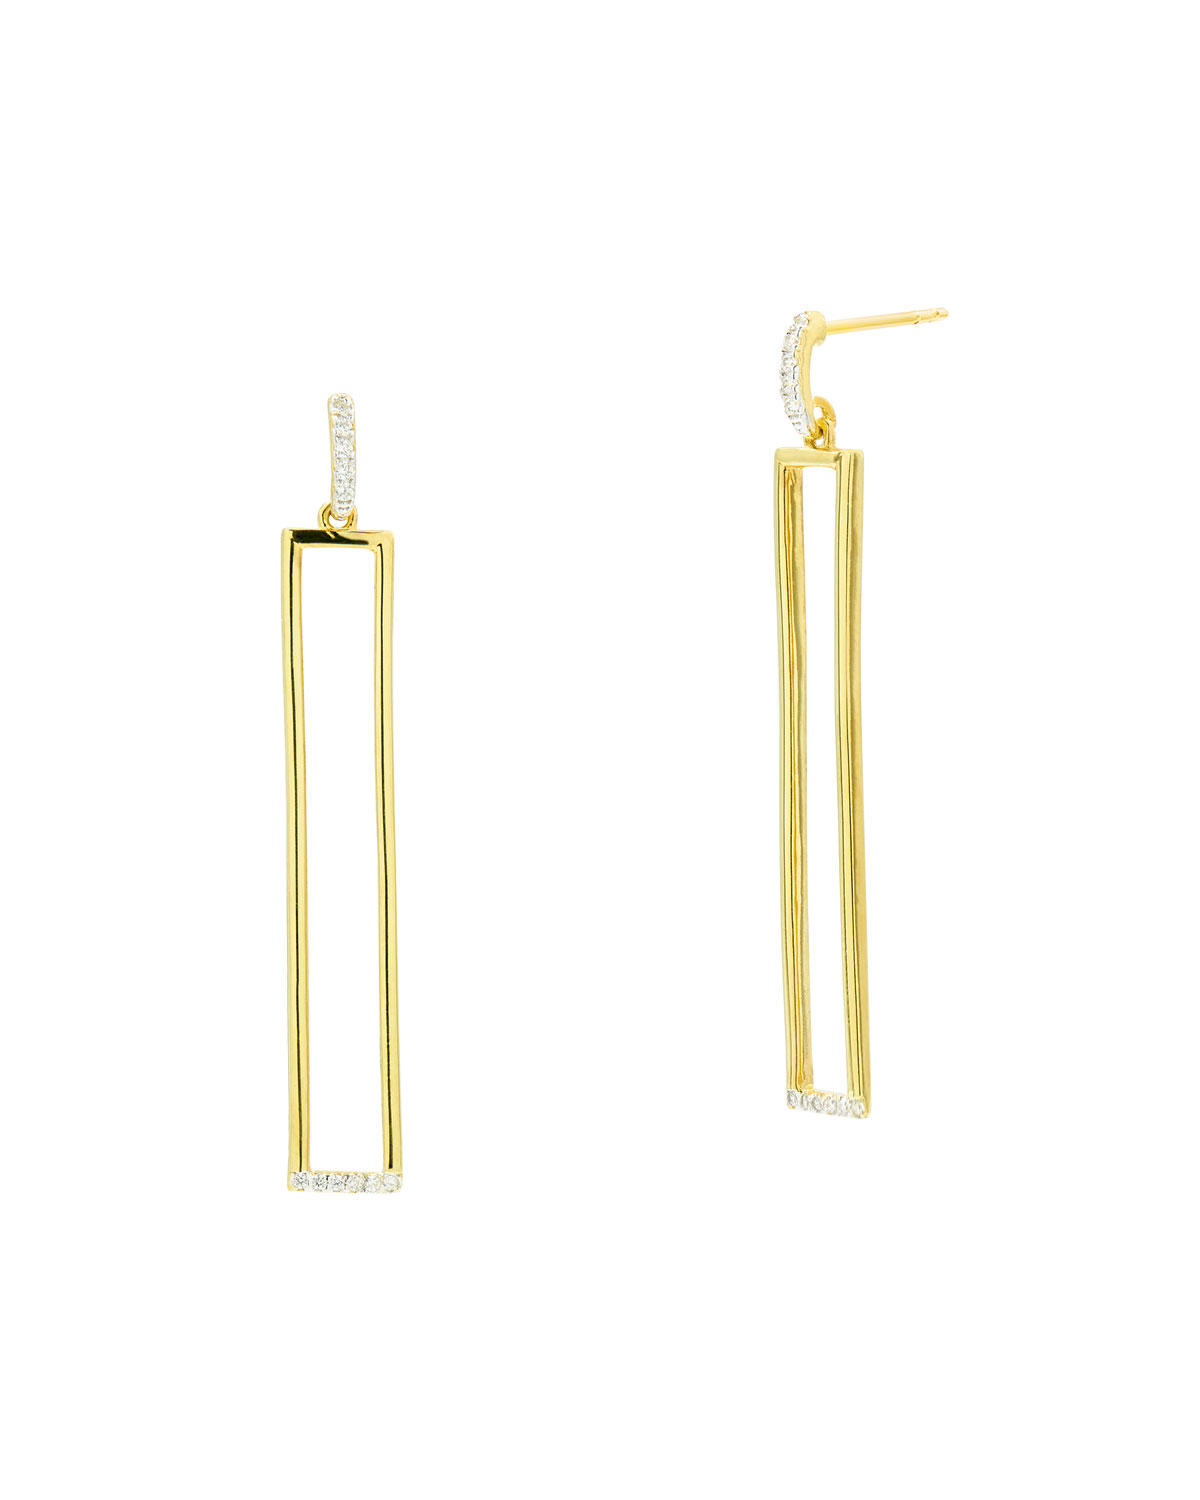 Cubic Zirconia and Elongated Earrings